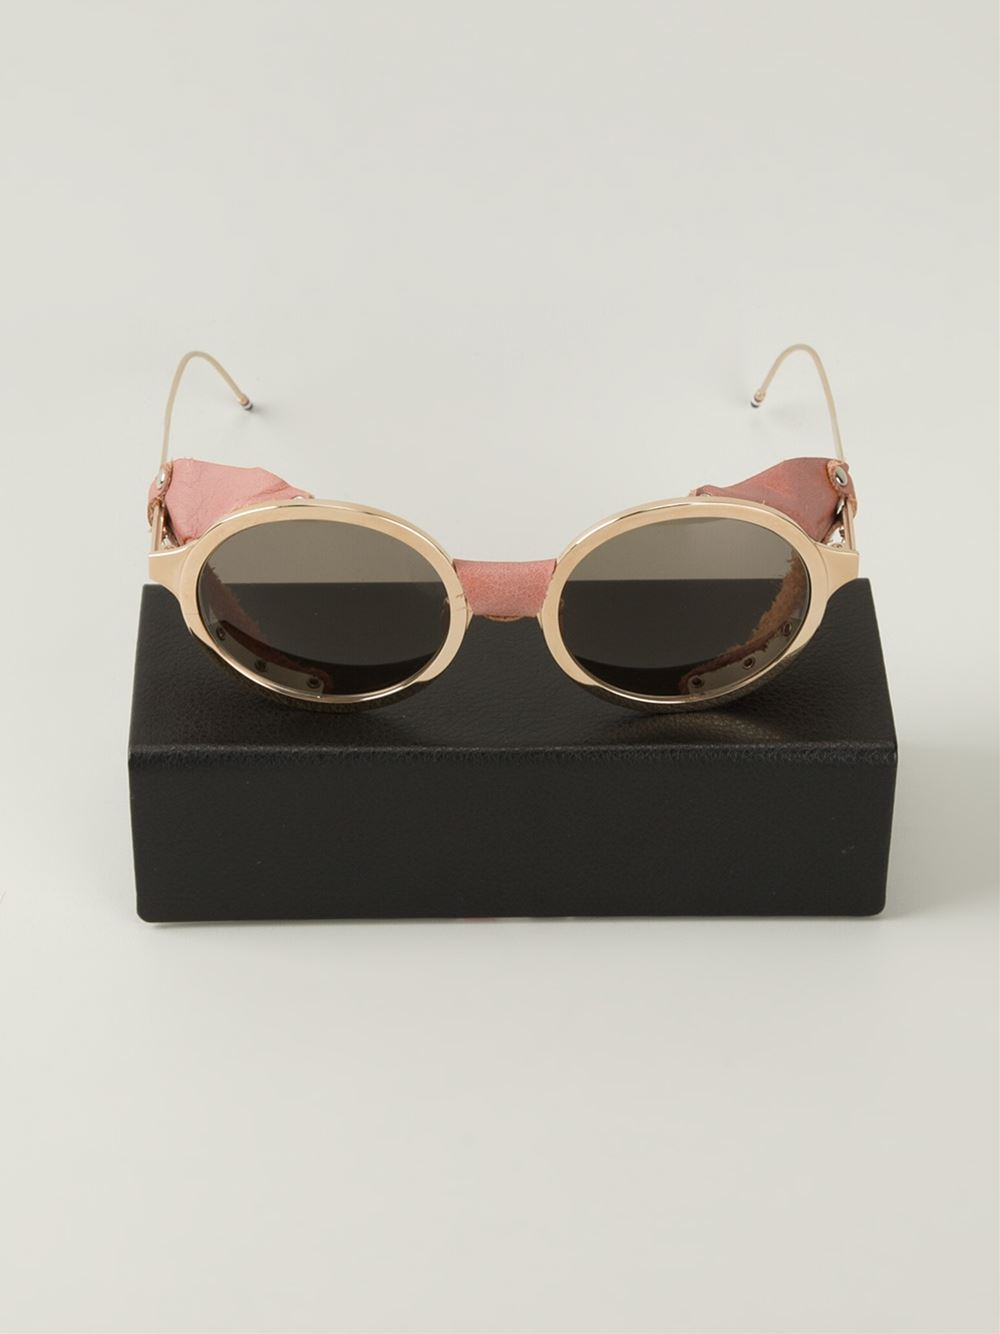 Round Gold Frame Sunglasses By Thom Browne : Thom browne Round Frame Sunglasses in Metallic Lyst